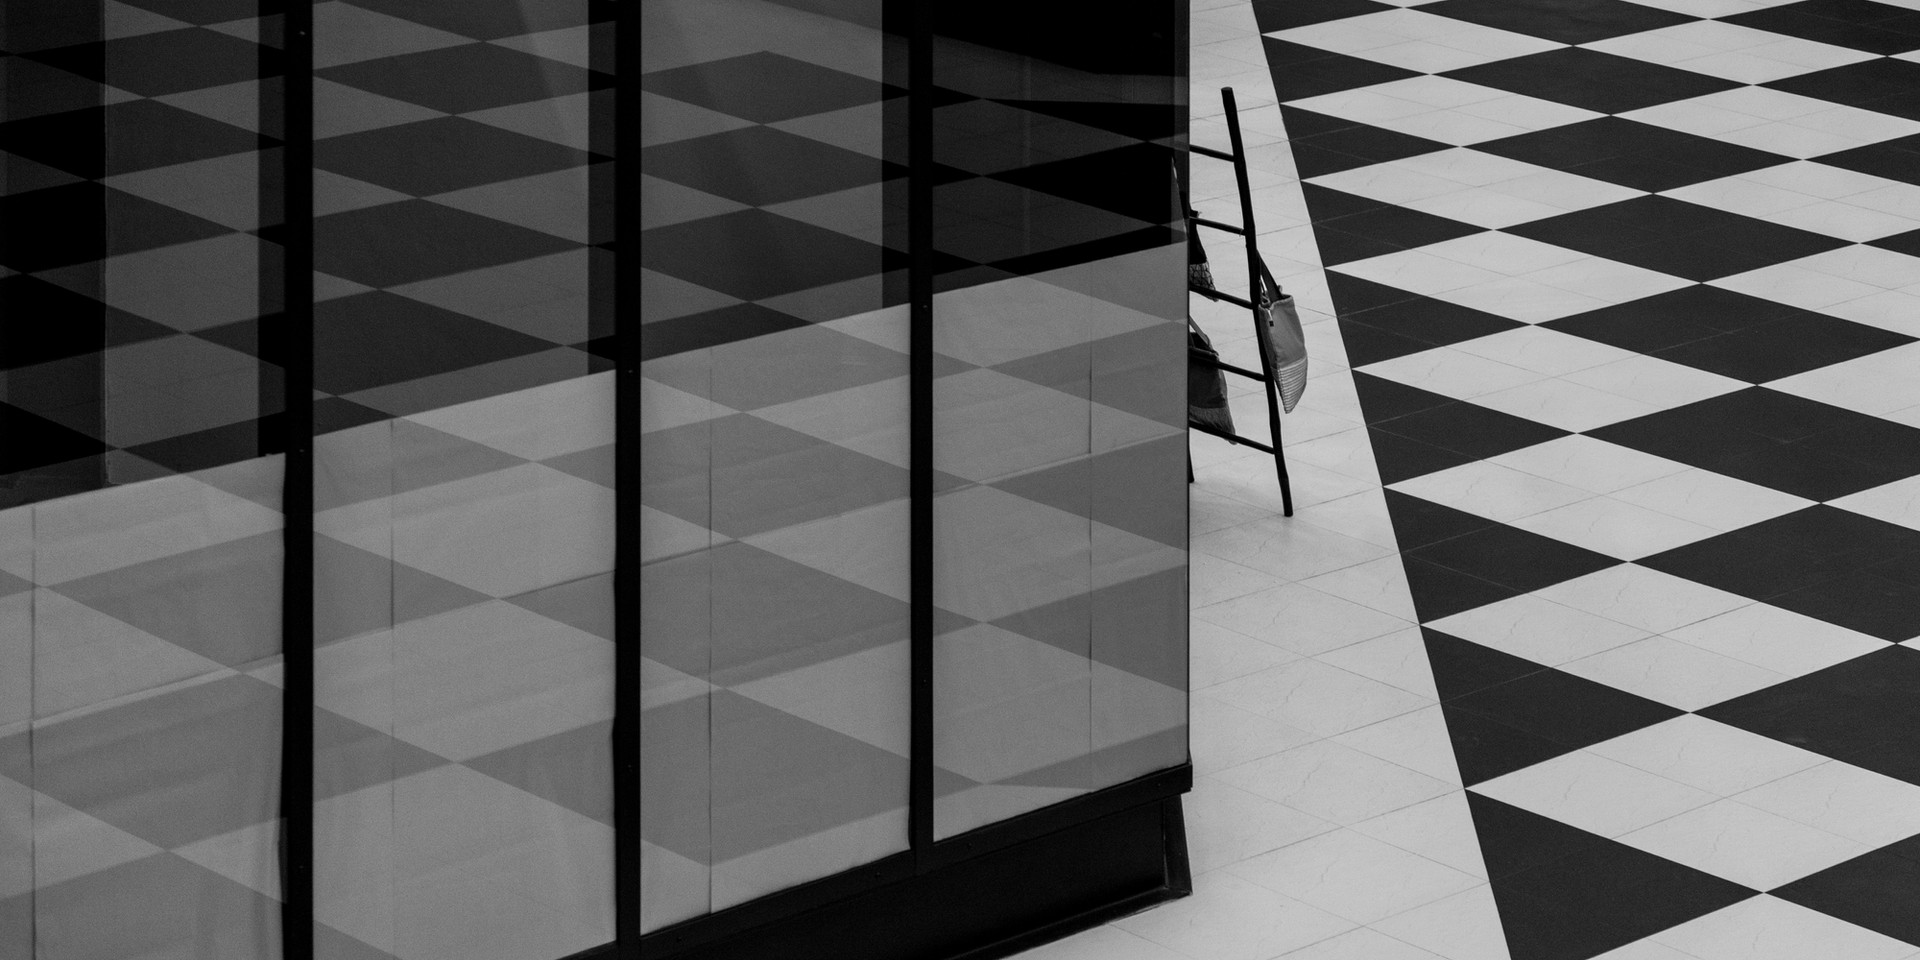 Black and White Tiles